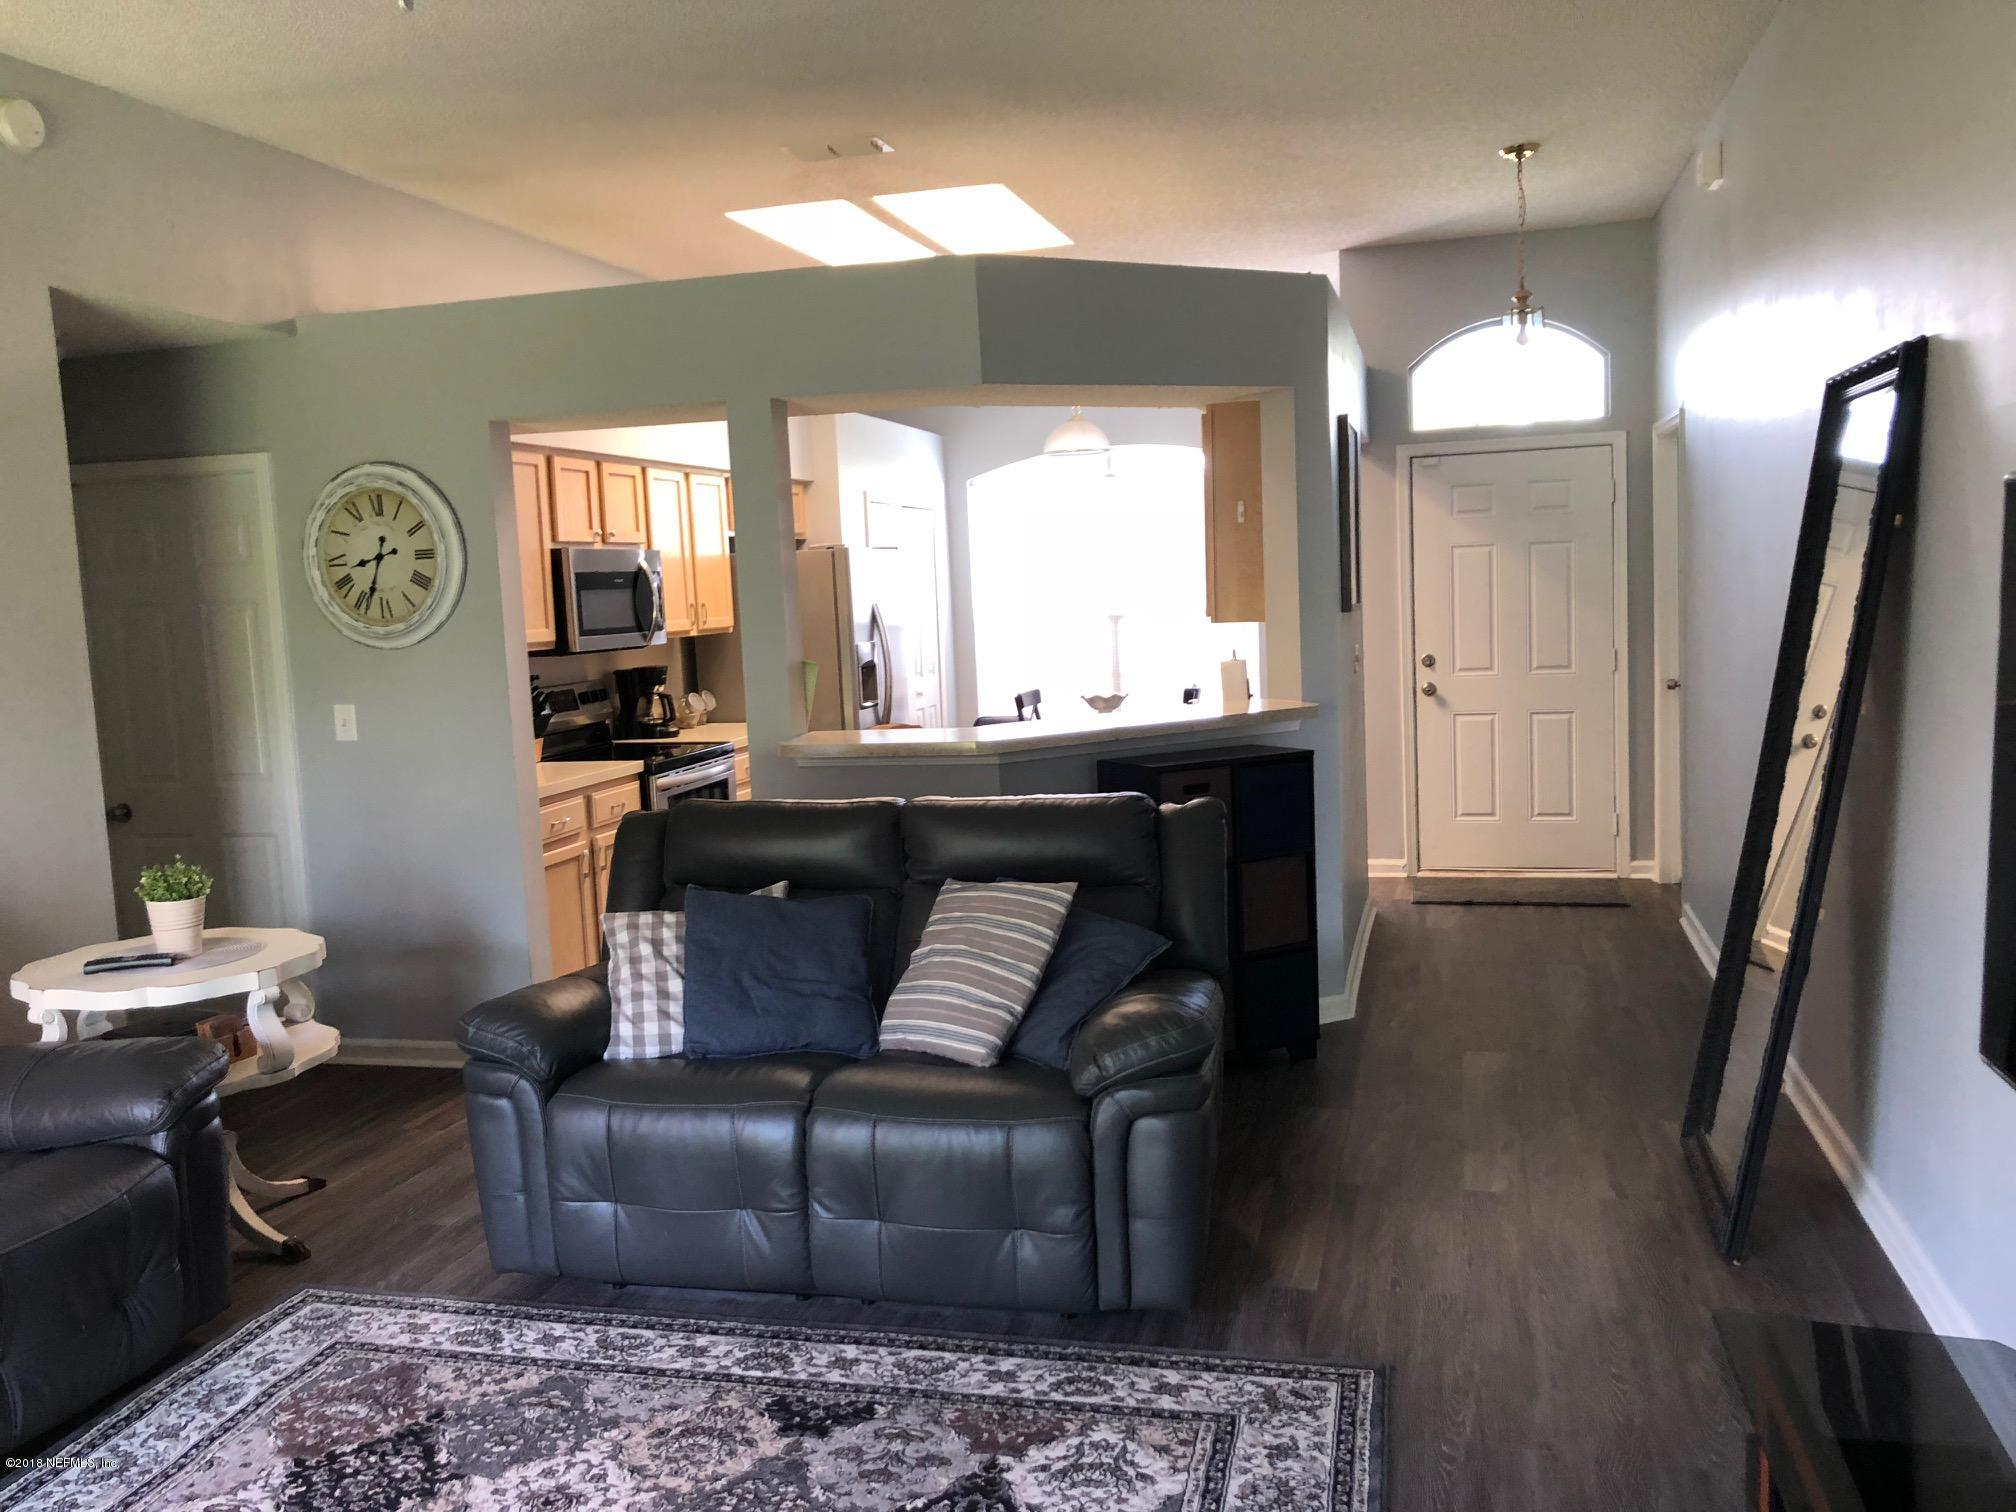 13176 STAFFORDSHIRE, JACKSONVILLE, FLORIDA 32225, 4 Bedrooms Bedrooms, ,2 BathroomsBathrooms,Residential - single family,For sale,STAFFORDSHIRE,947853